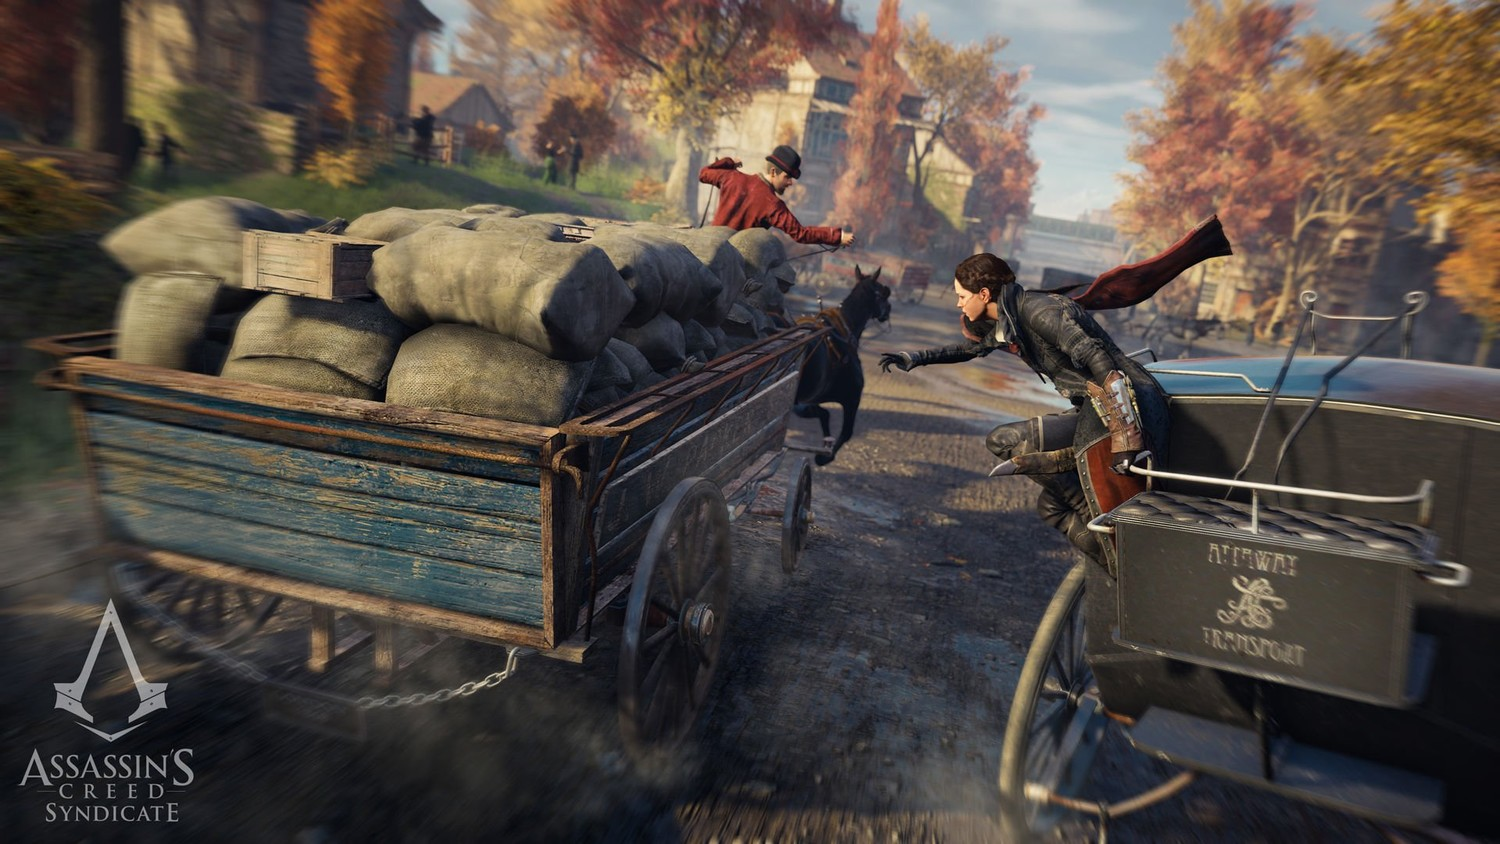 Screenshot for the game Assassin's Creed: Syndicate (2015)  | RePack от R.G. Механики